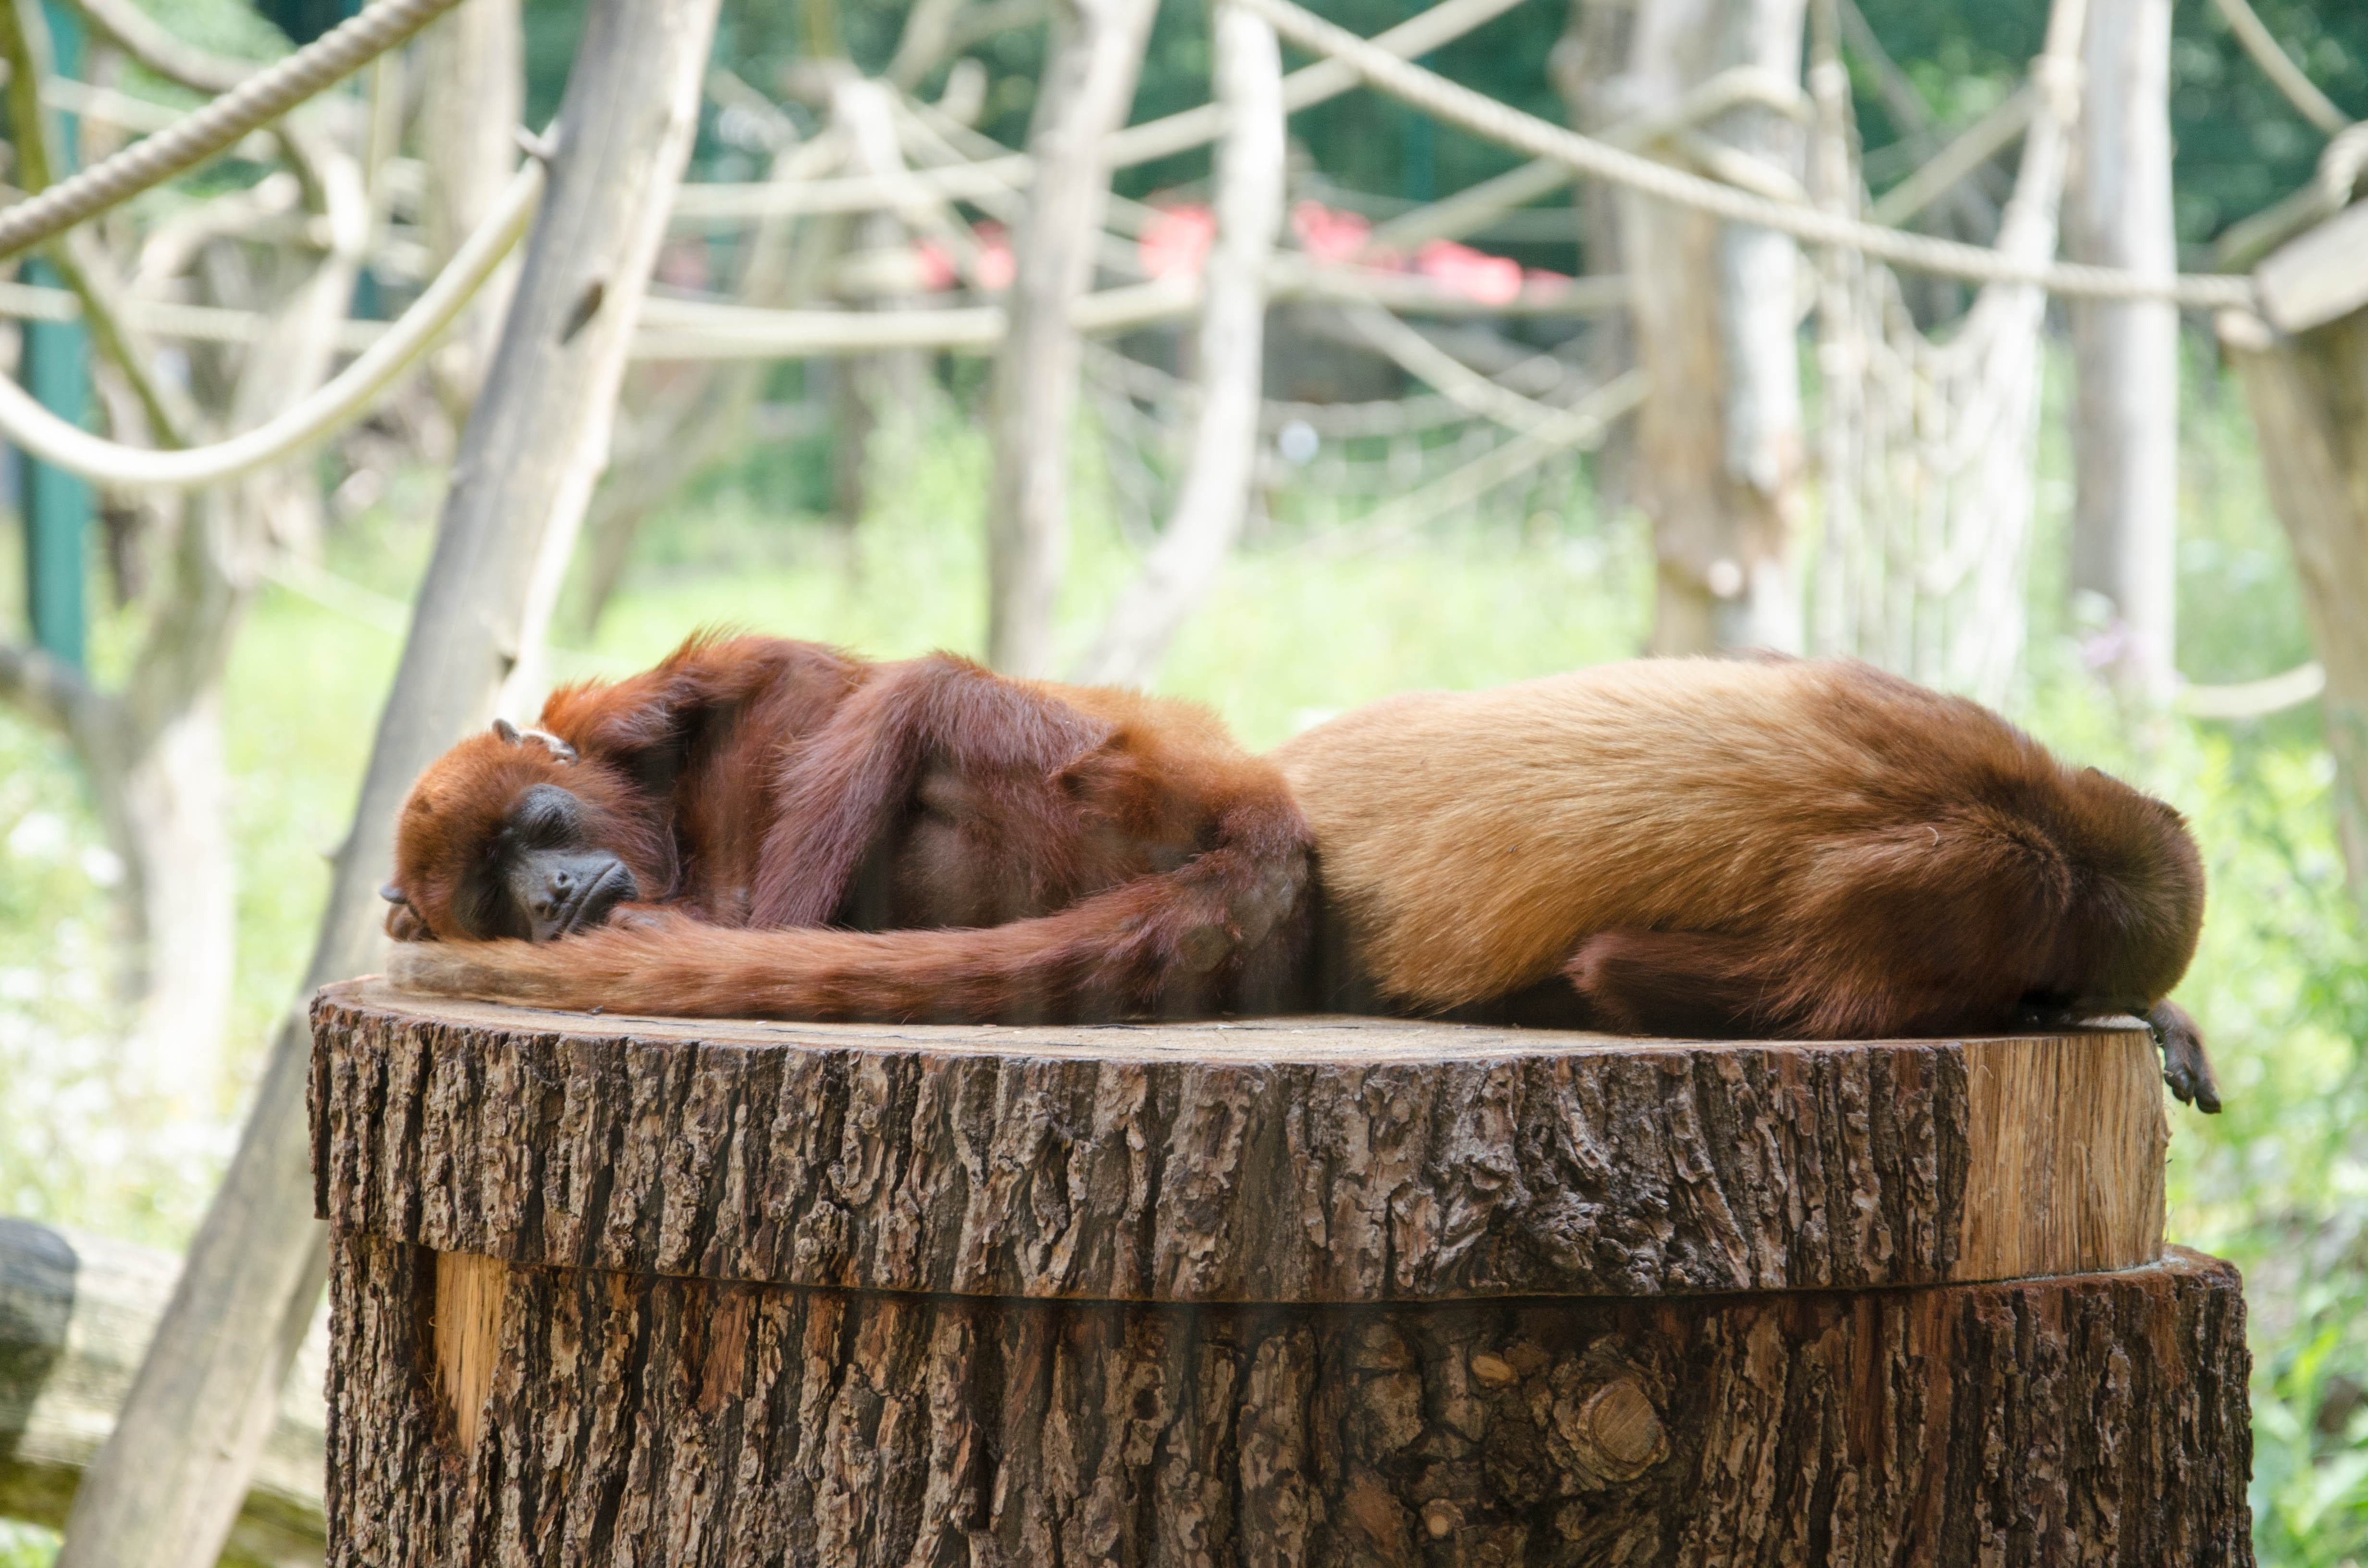 two primate laying on wood slab